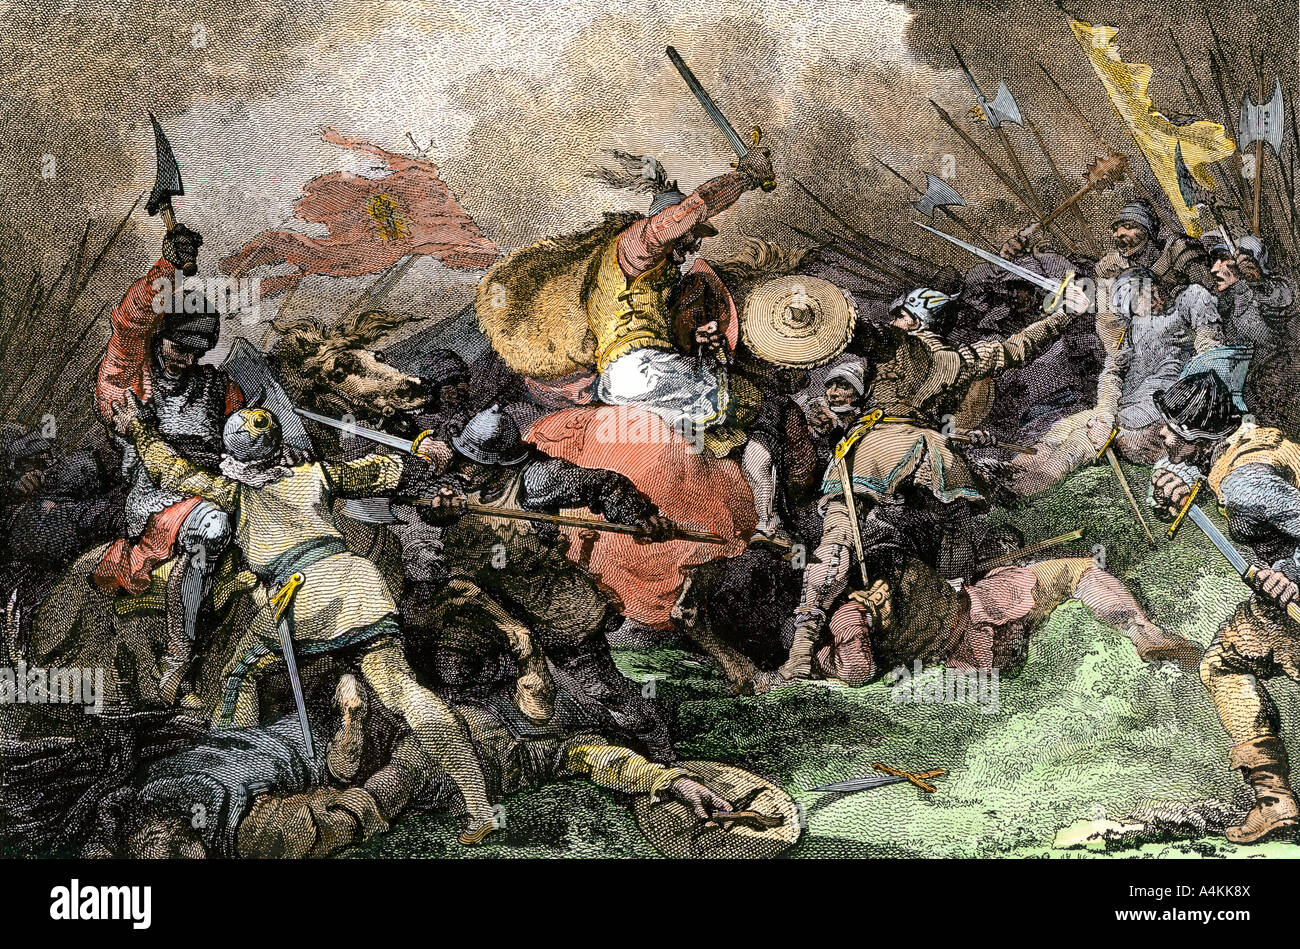 Saxons defeated by William the Conqueror at the Battle of Hastings 1066 - Stock Image